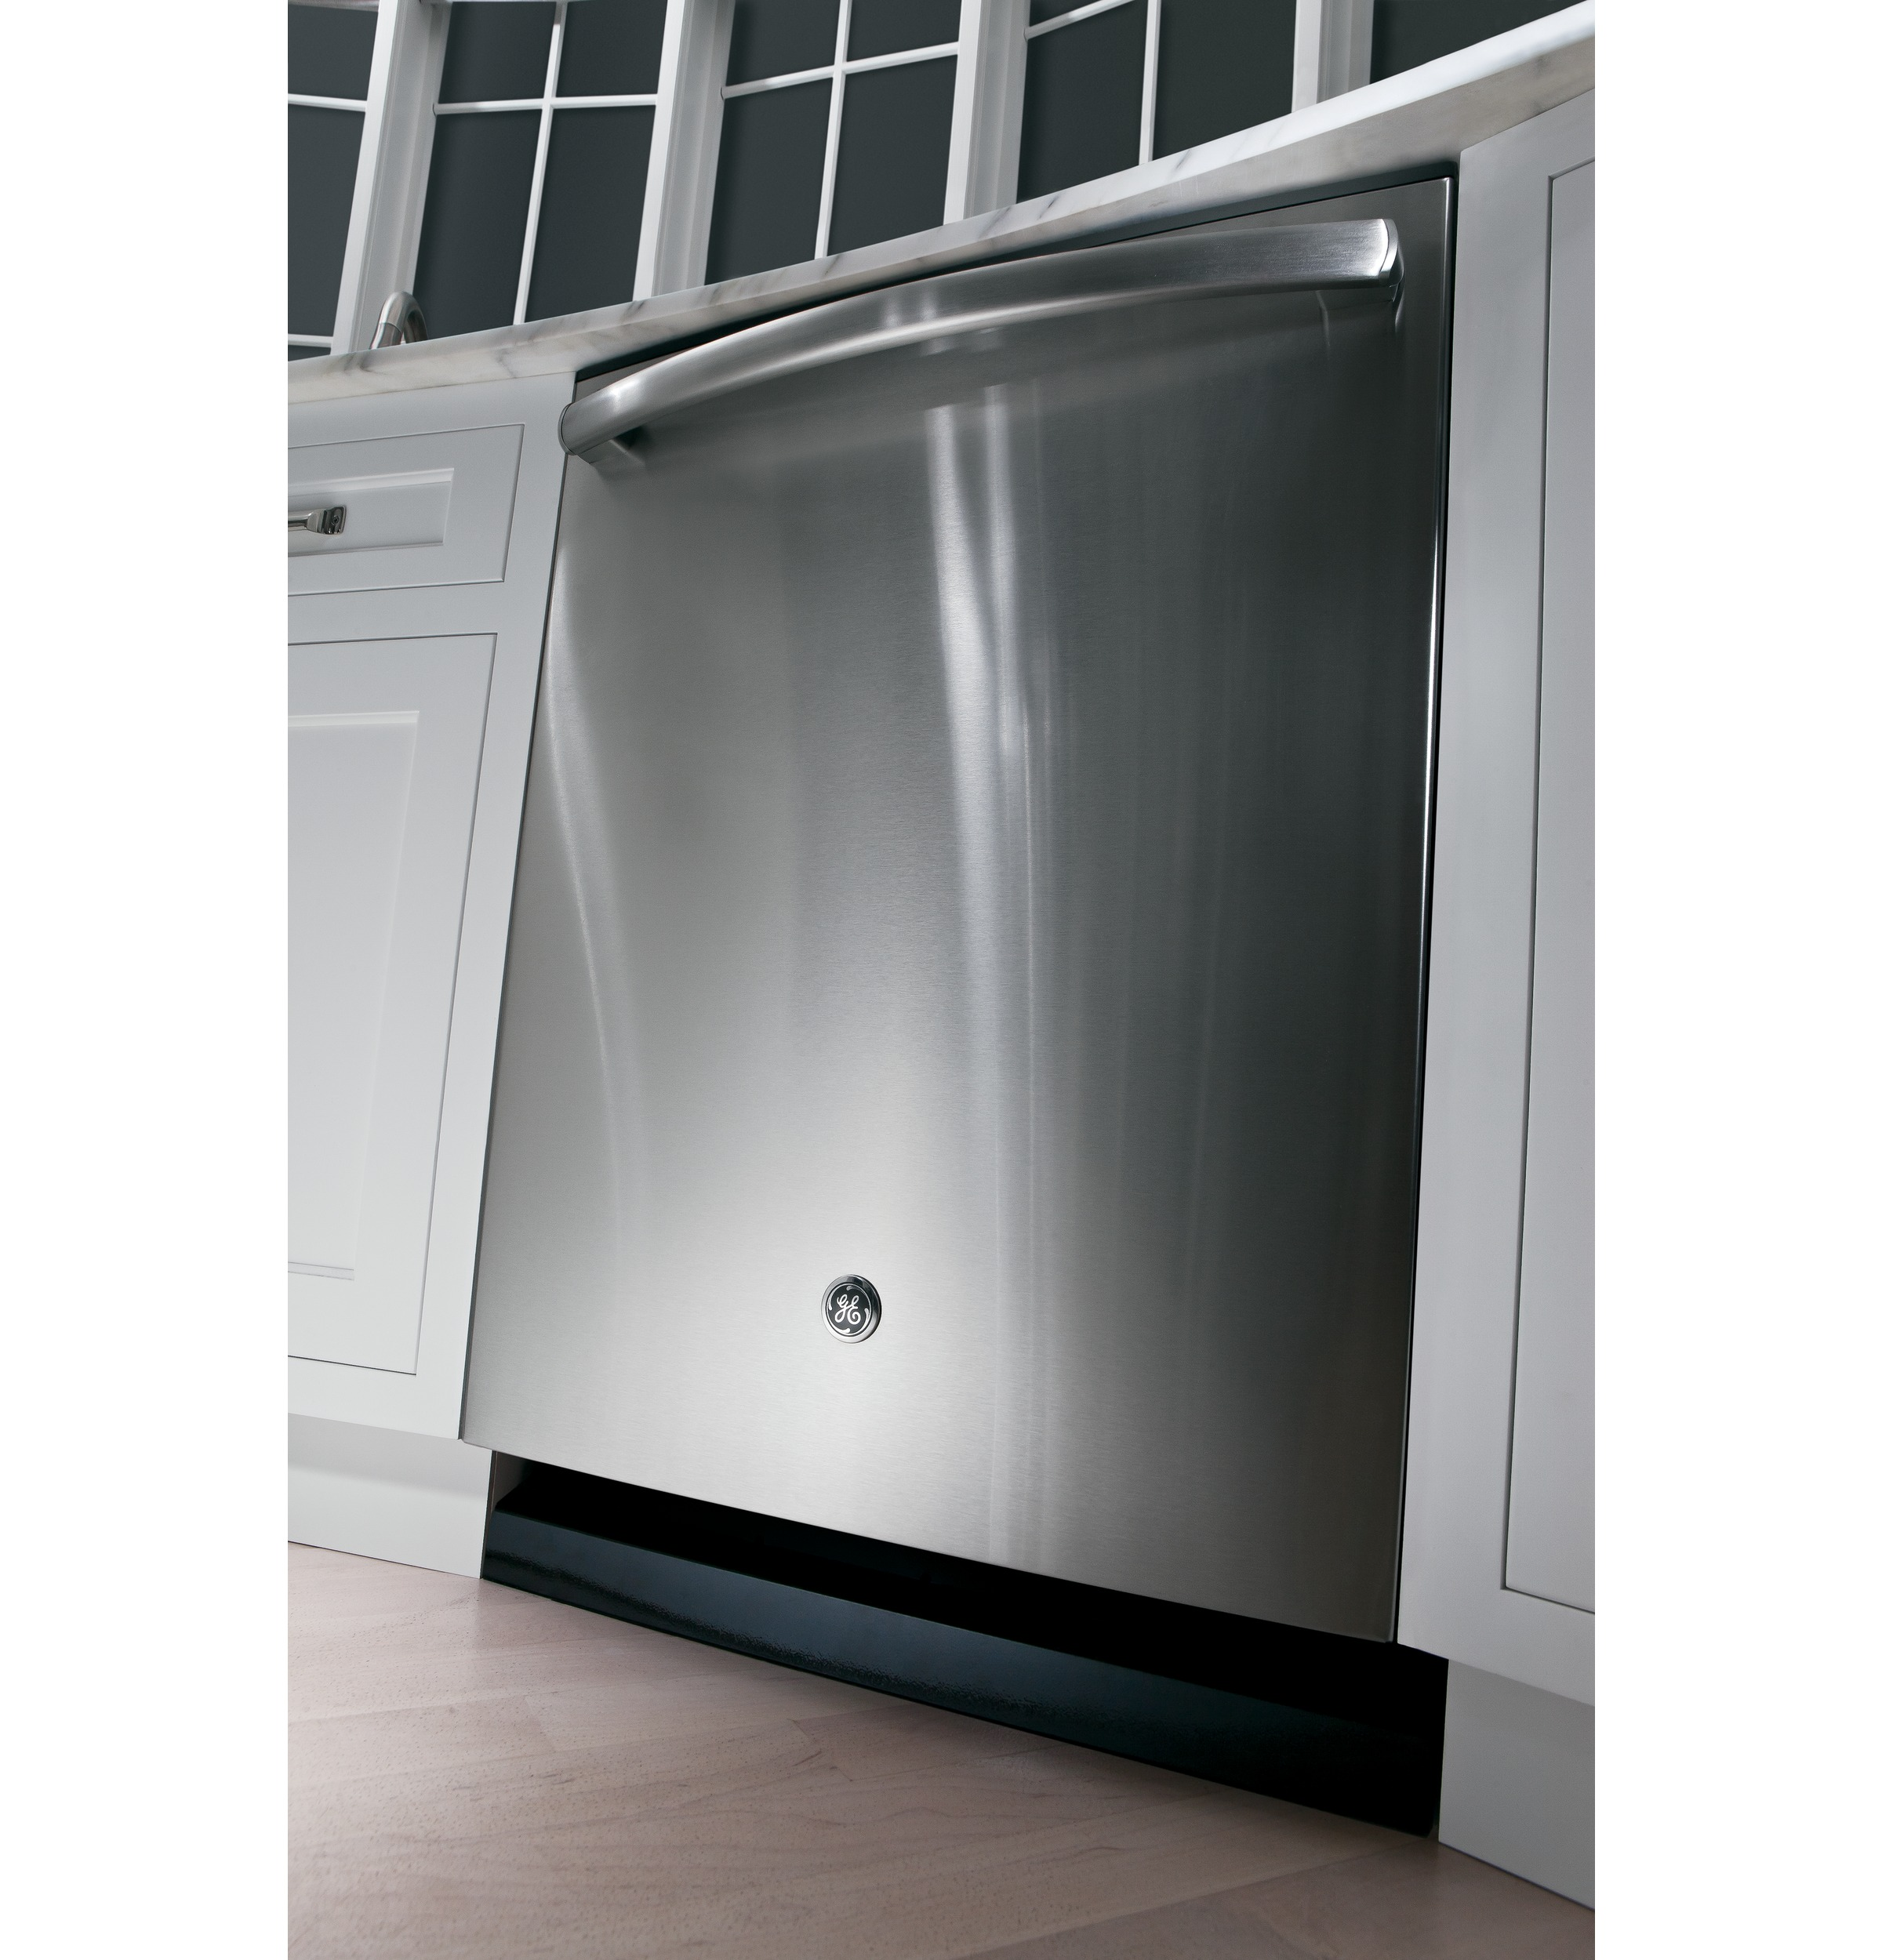 "GE 24"" Hybrid Built-in Dishwasher w/ Stainless Steel Interior - Stainless Steel"